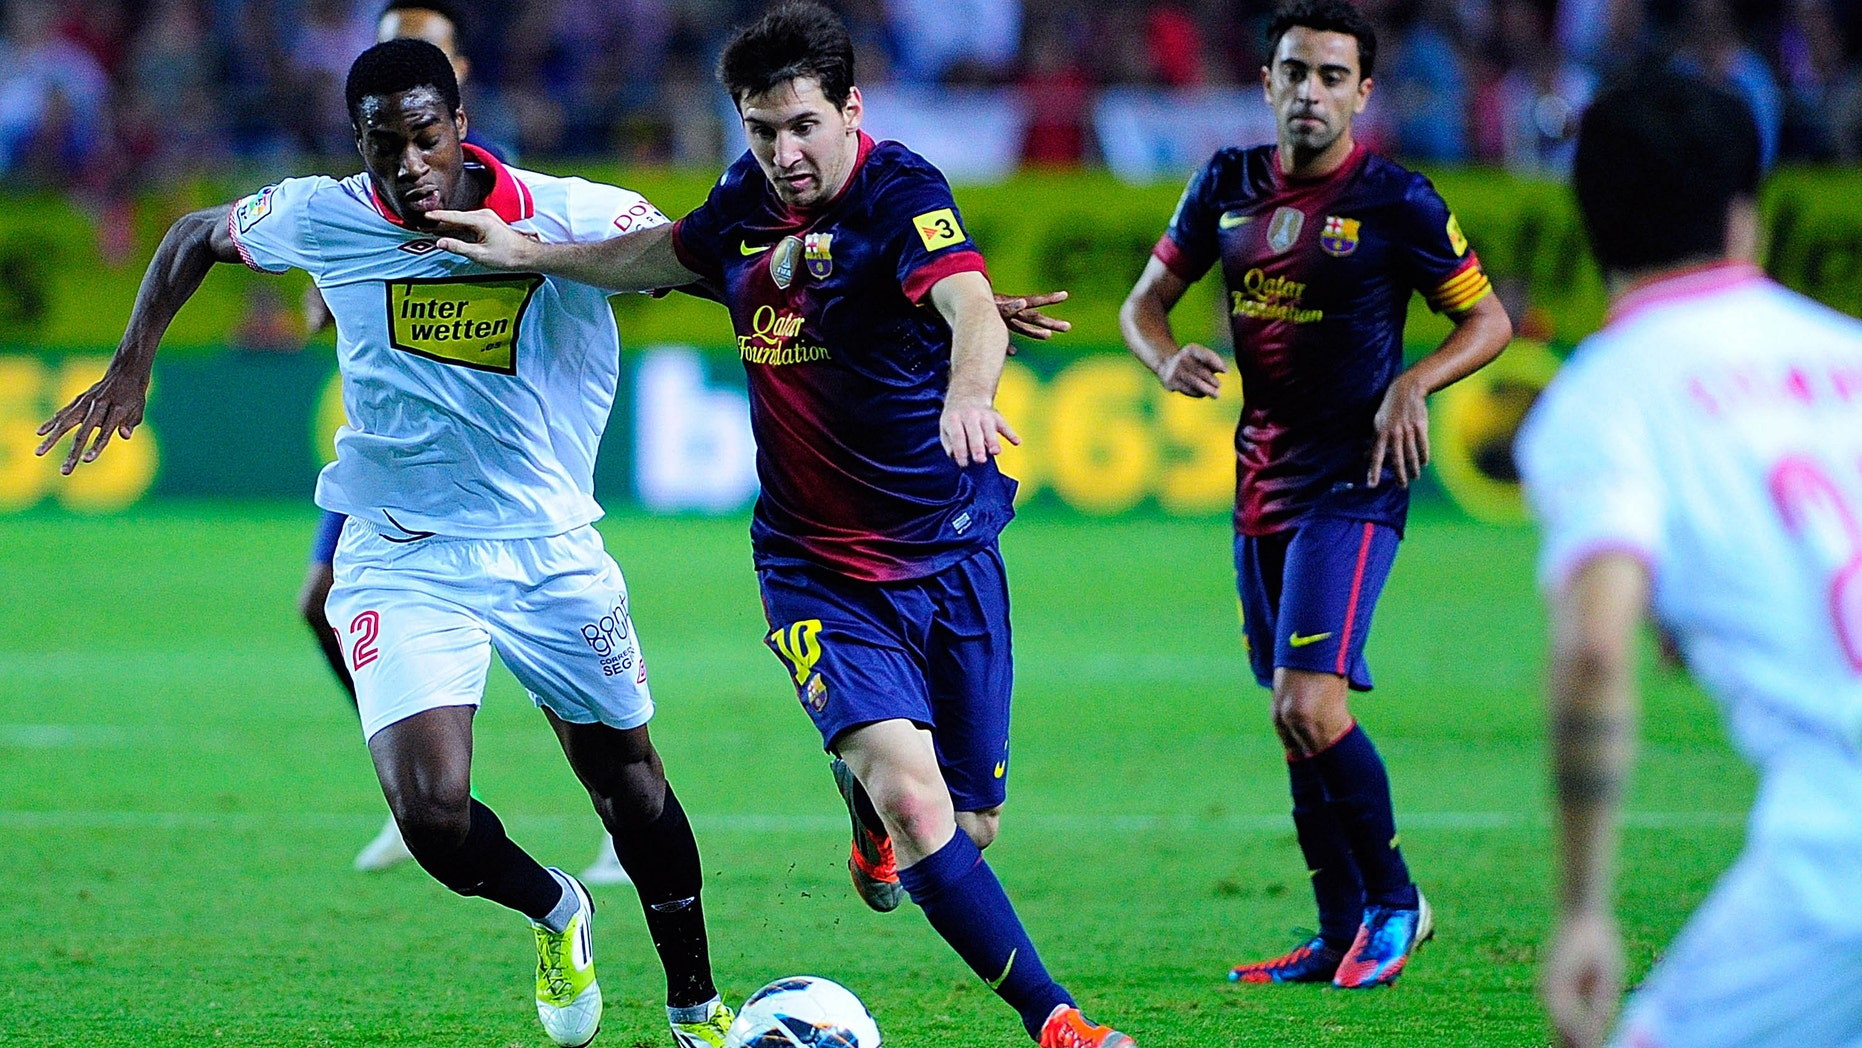 Leo Messi of FC Barcelona runs for the ball with Geoffrey Kondogbia of Sevilla FC during the La Liga match between Sevilla FC and FC Barcelona at Estadio Ramon Sanchez Pizjuan on September 29, 2012 in Seville, Spain.  (Photo by Gonzalo Arroyo Moreno/Getty Images)